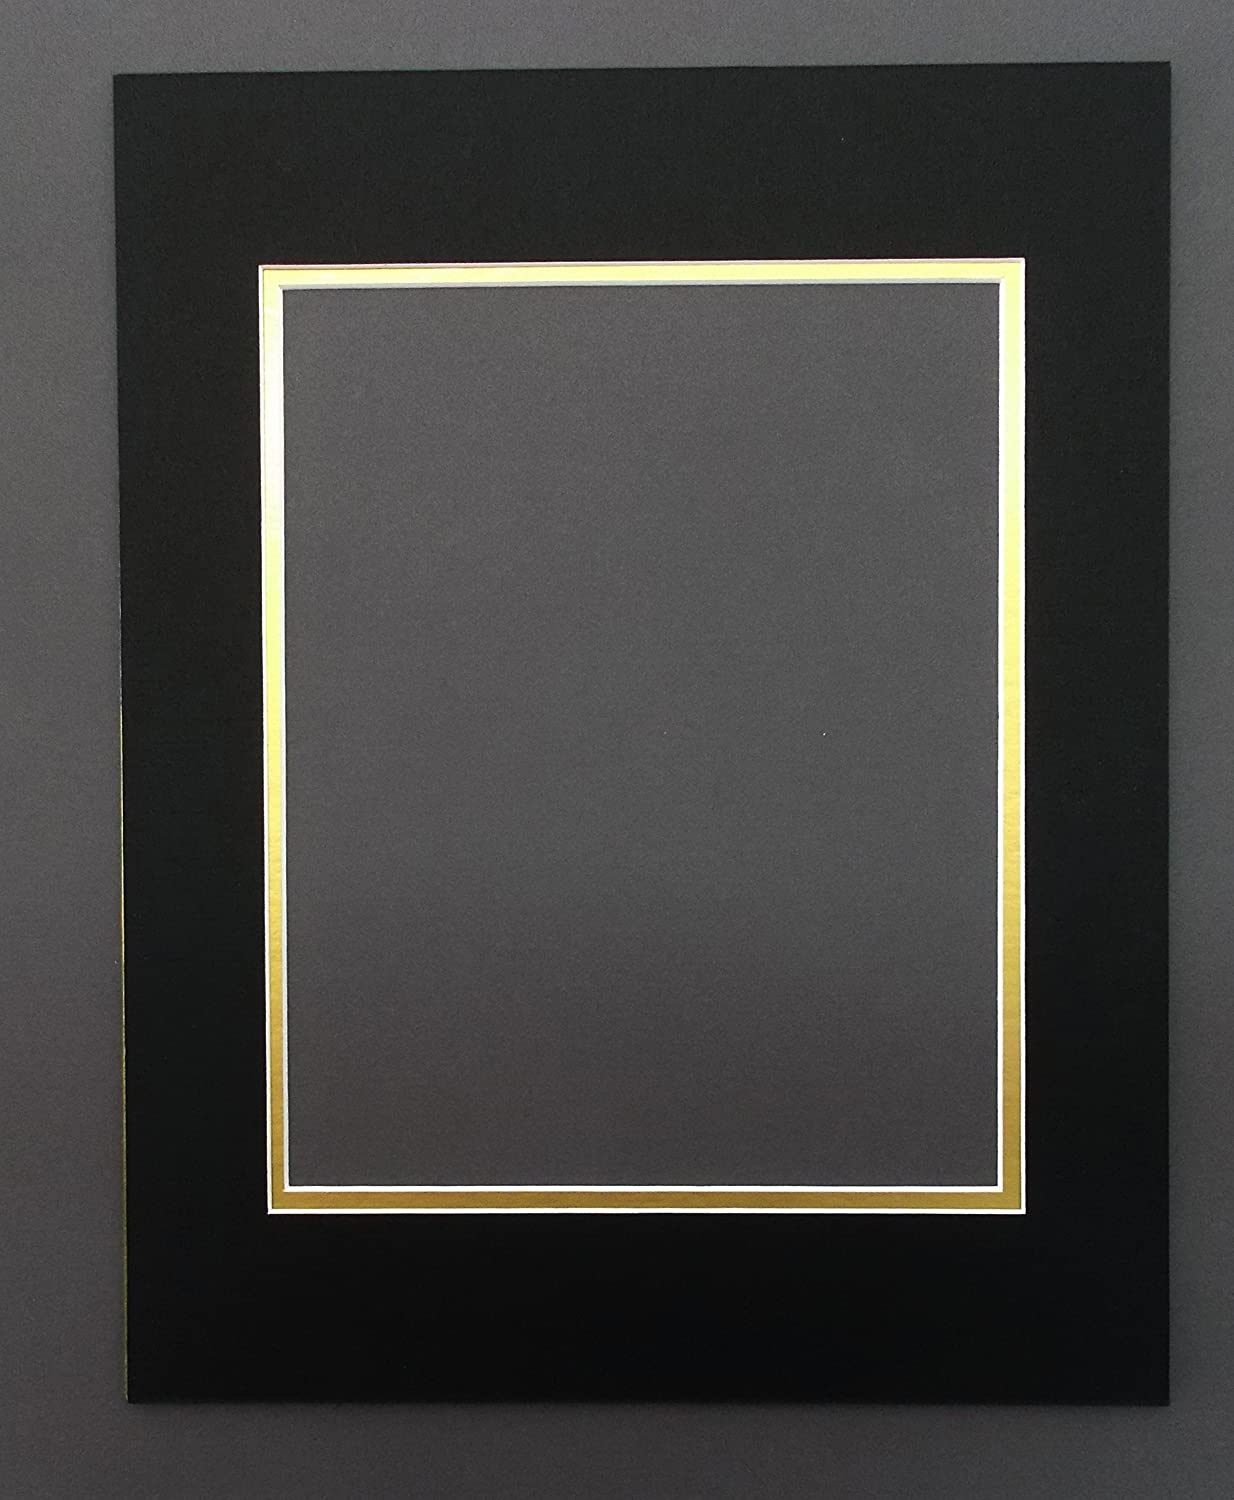 Amazon pack of 5 11x14 black gold double picture mats amazon pack of 5 11x14 black gold double picture mats mattes matting cut for 8x10 pictures arts crafts sewing jeuxipadfo Gallery